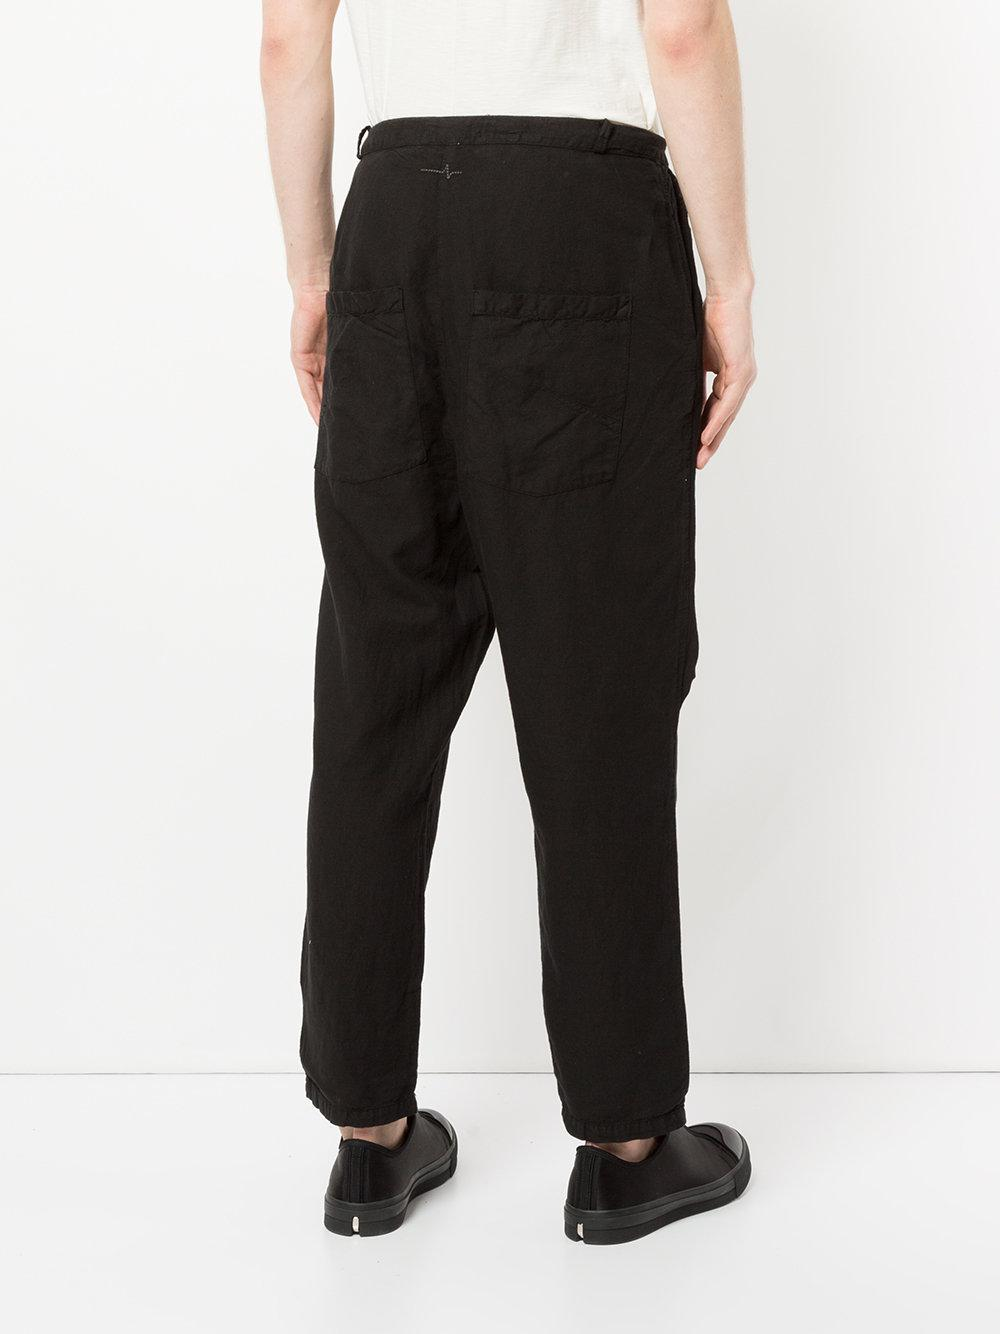 First Aid To The Injured Linen Aspasius Trousers in Black for Men